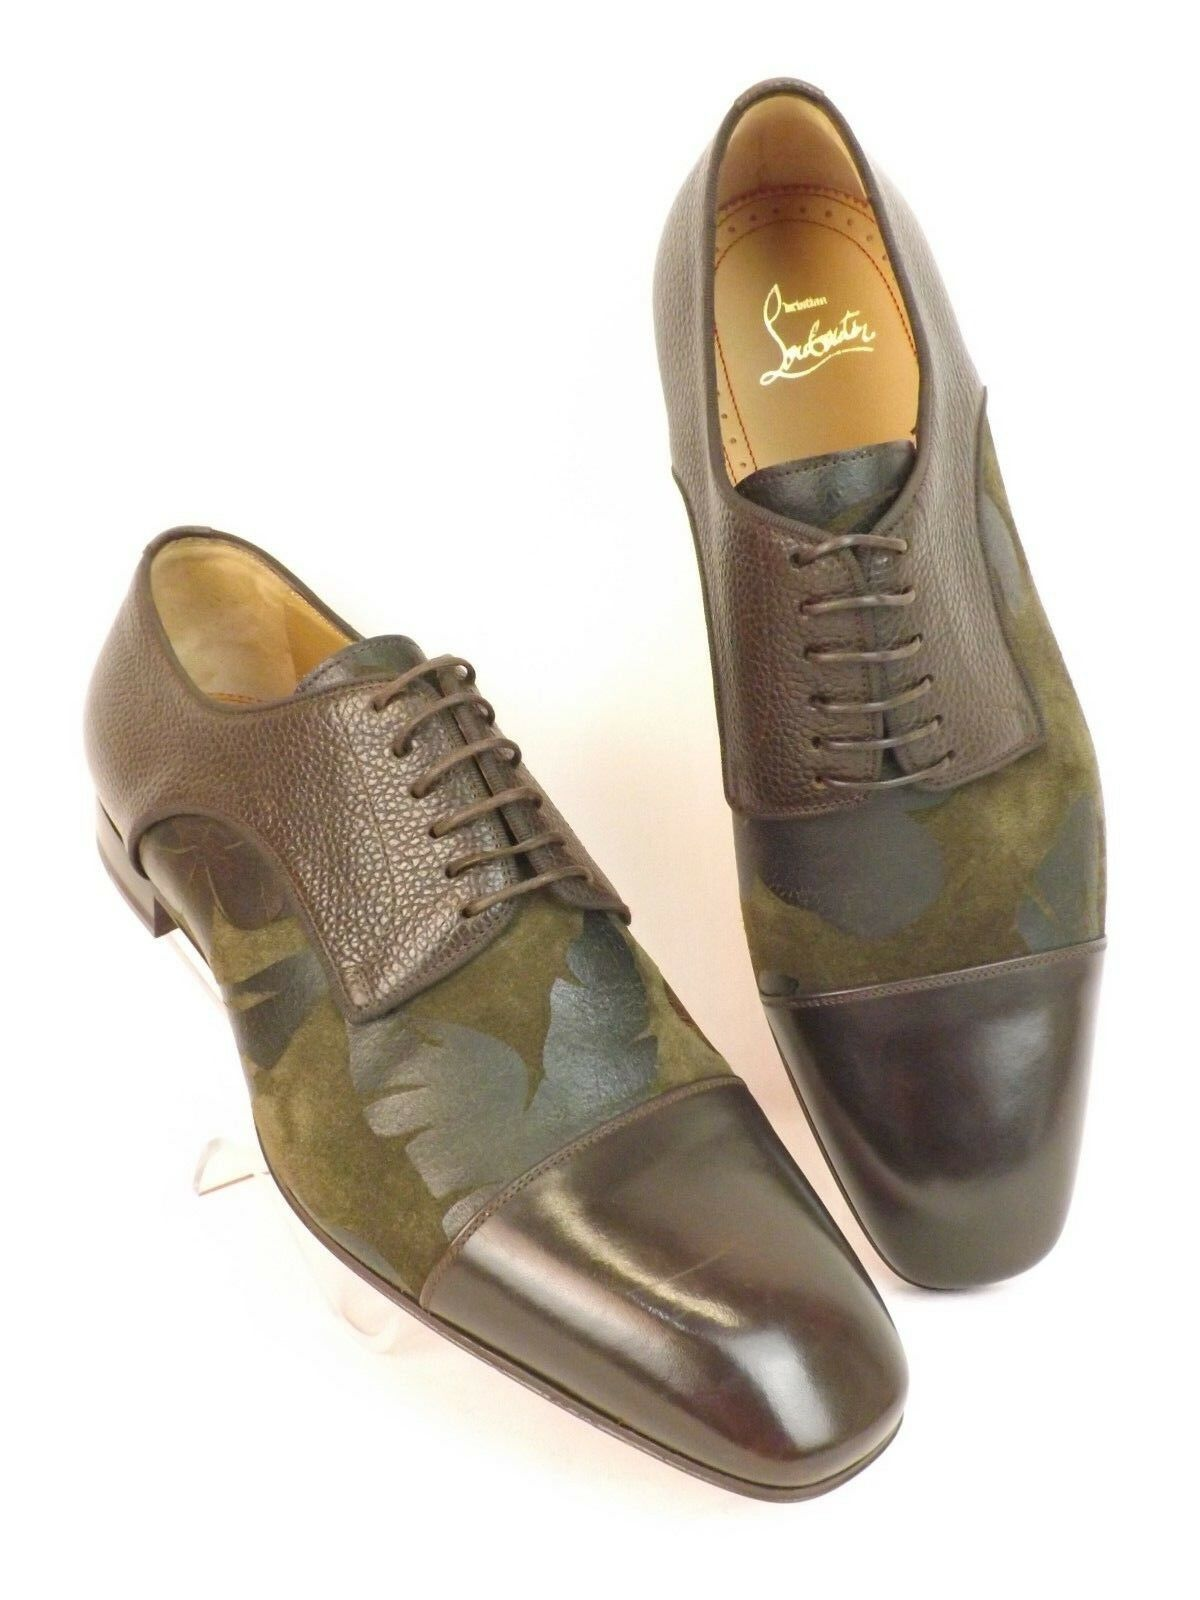 c48dab36d61 Louboutin Top Daviol Brown Flower Suede Leather Lace up Derby Shoes 42 9